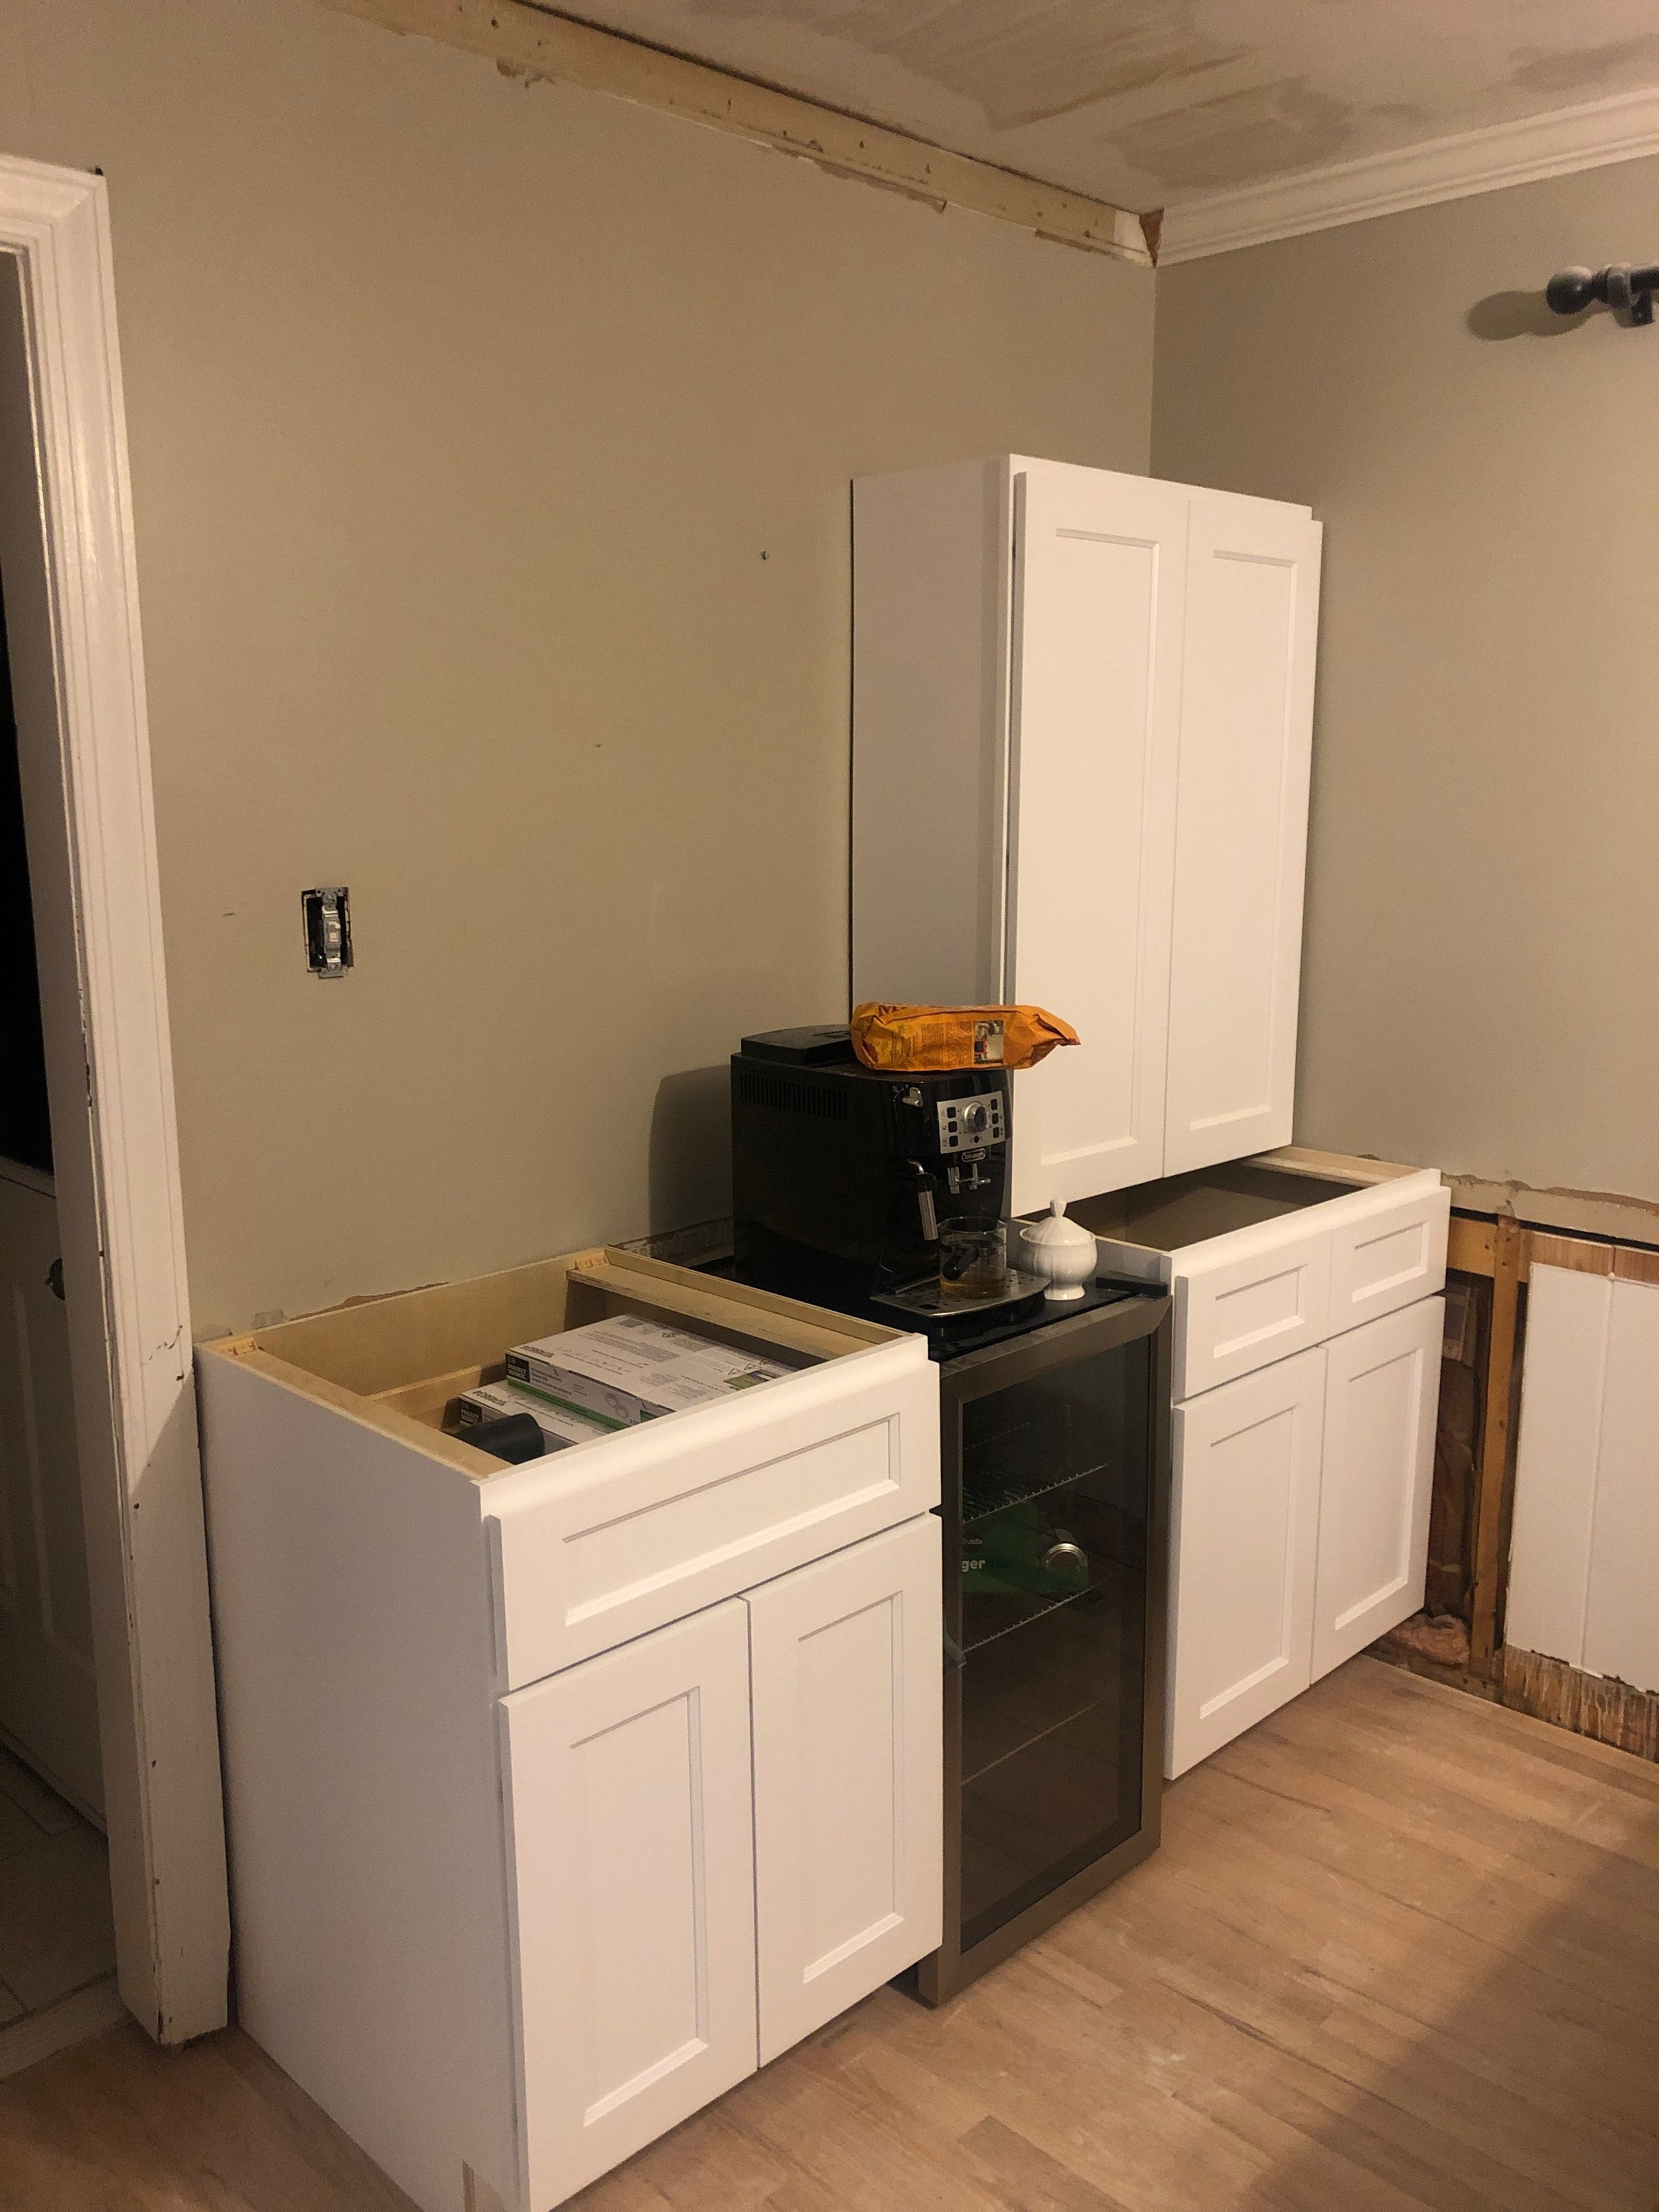 Who doesn't want more cabinet space?! We had a blank wall in the eat-in kitchen area, so we decided to make it the wet bar. Obviously, we didn't wait to plug the coffee maker back in!